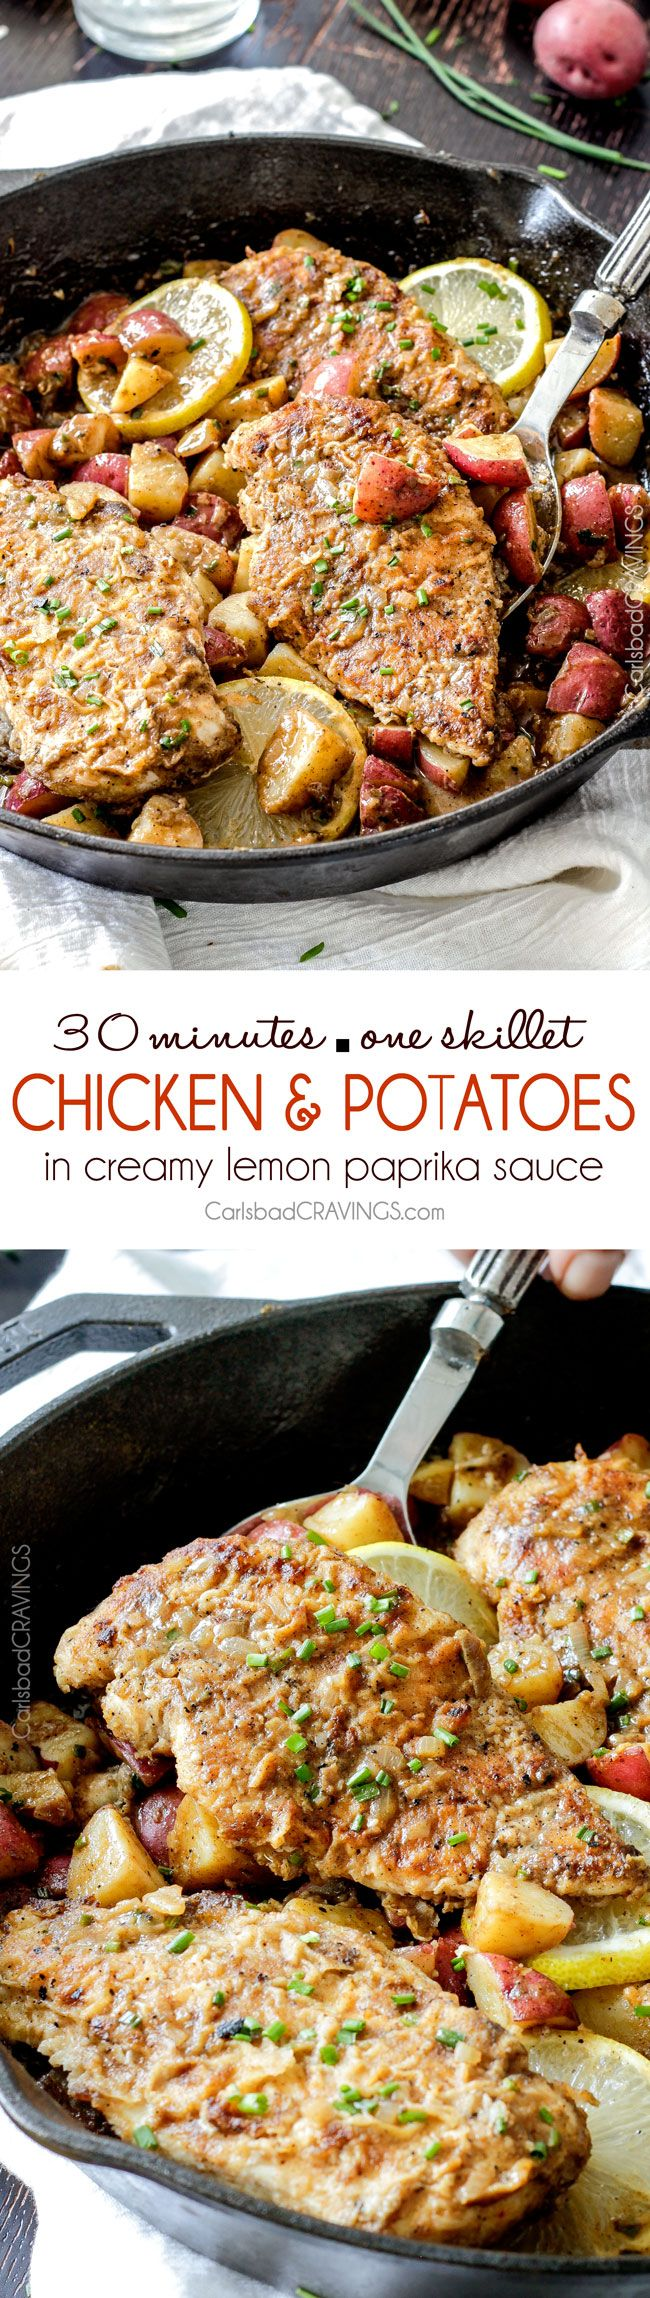 30 Minute Chicken and Potato Skillet in Creamy Lemon Paprika Sauce - quick and easy one pan meal (and one microwave dish), bursting with flavor. The potatoes finish cooking in the incredible sauce so they are SO flavorful and the crispy chicken is amazing!